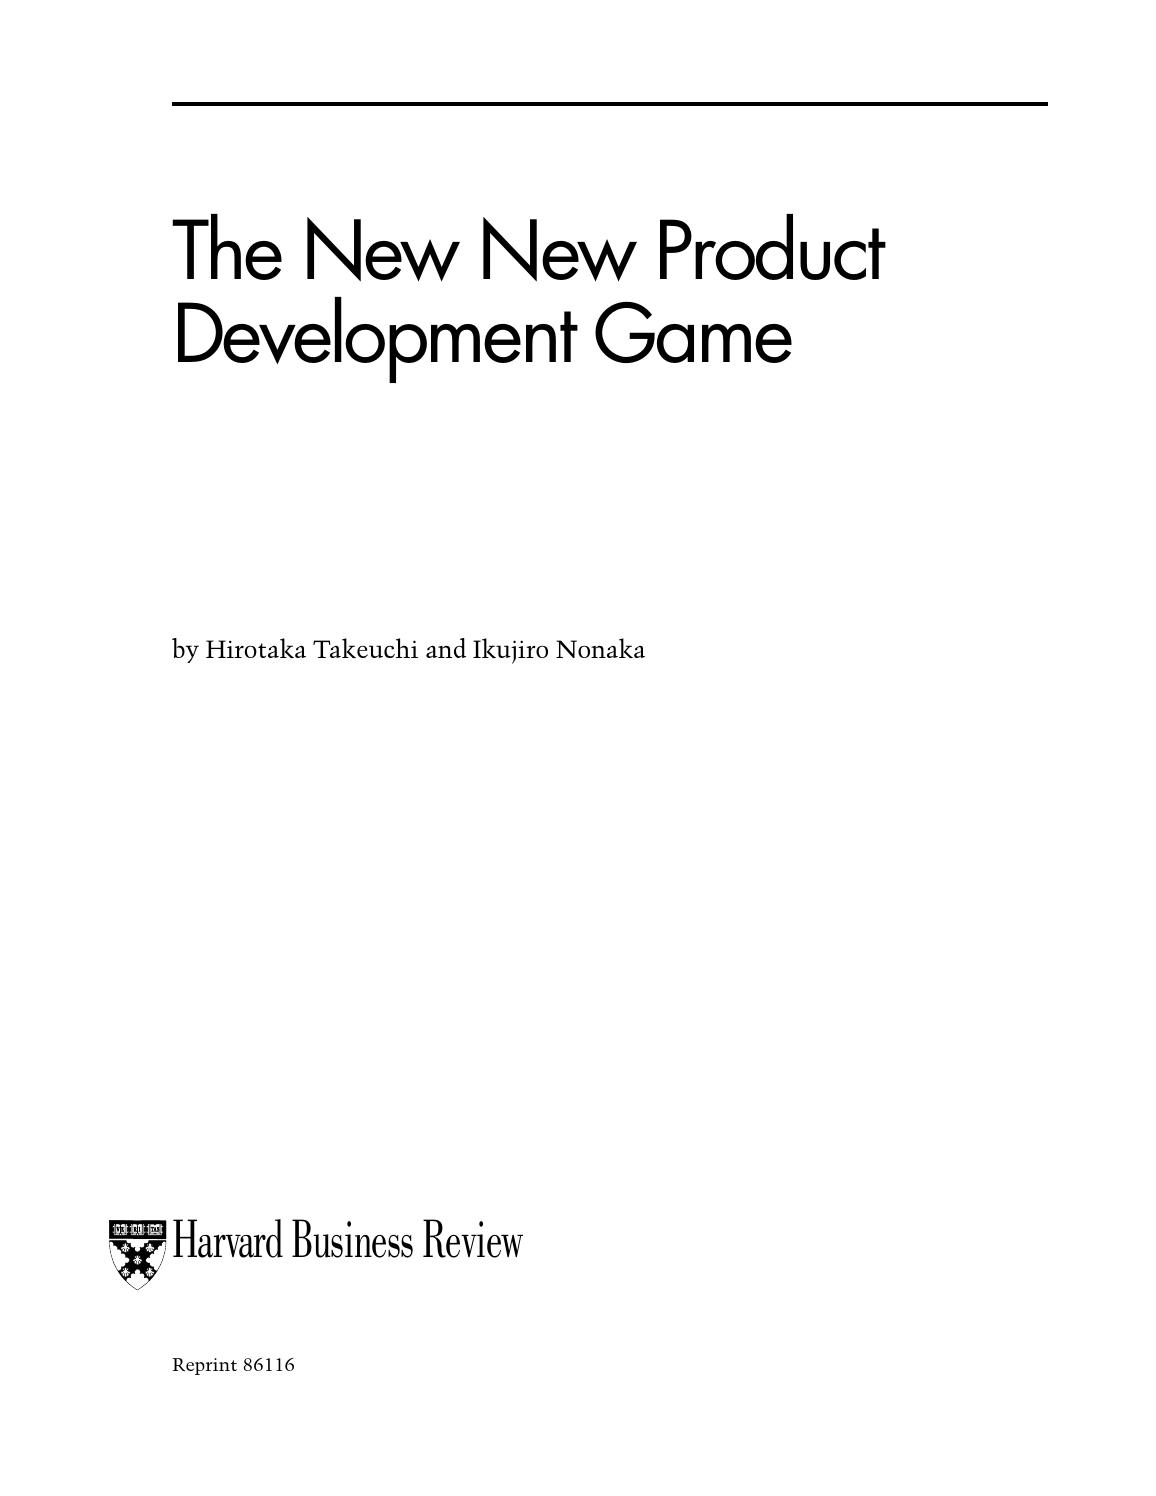 The New New Product Development Game